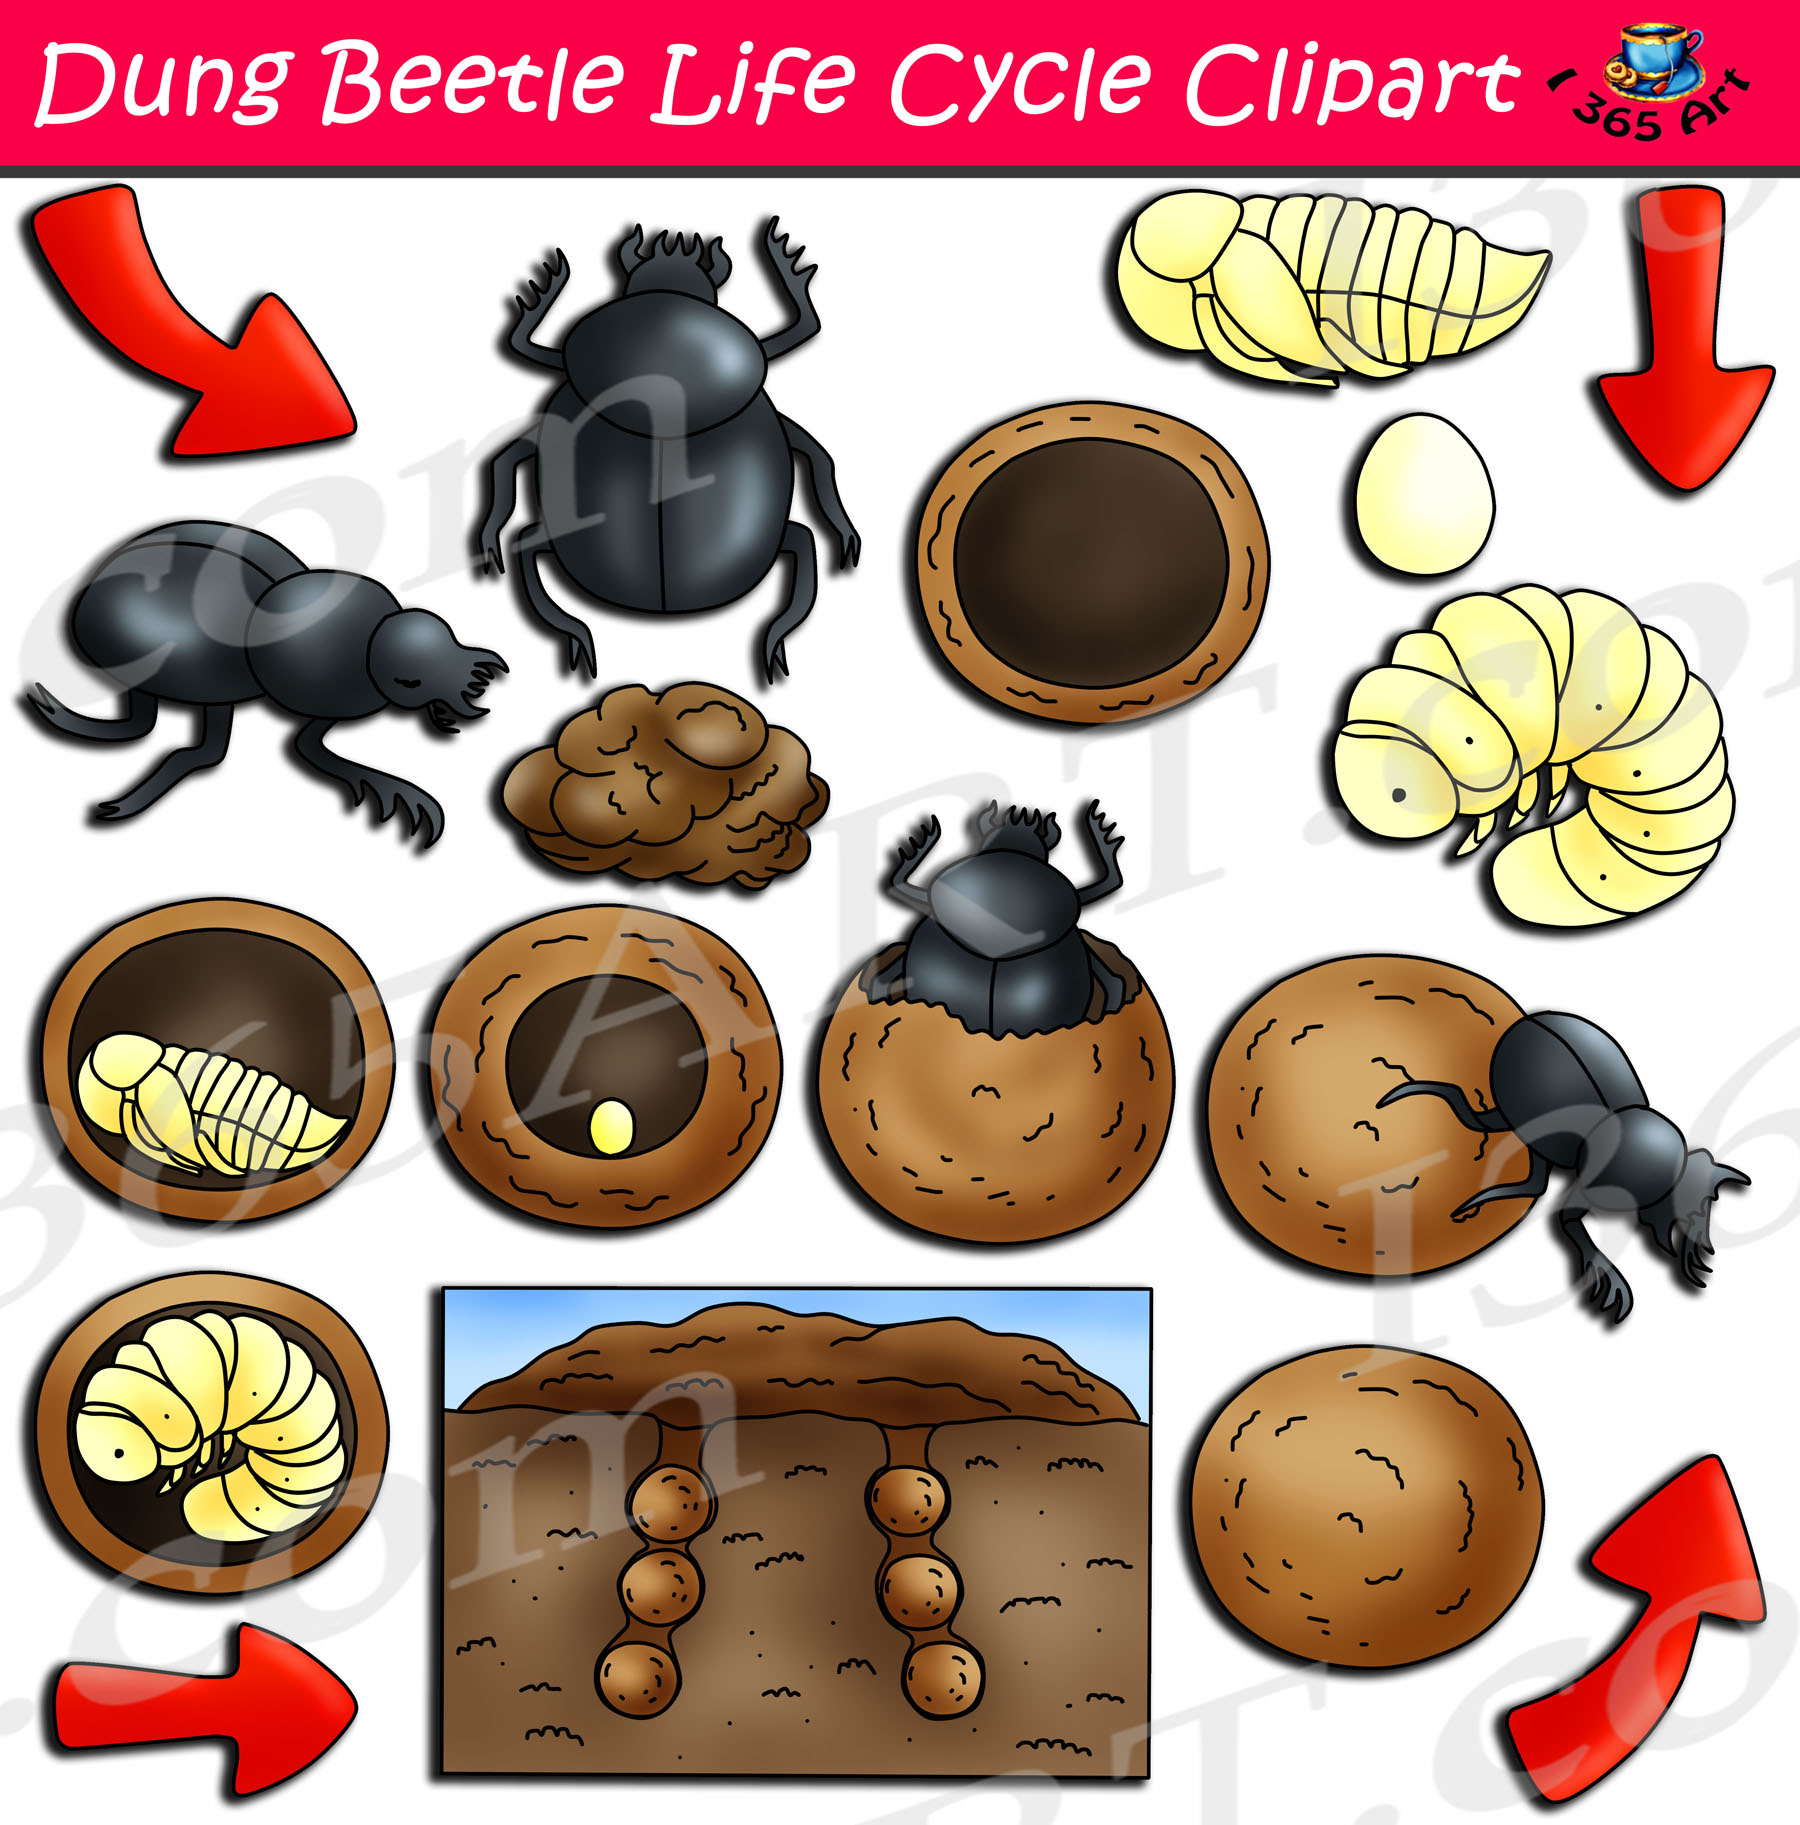 Dung Beetle Life Cycle Clipart Set